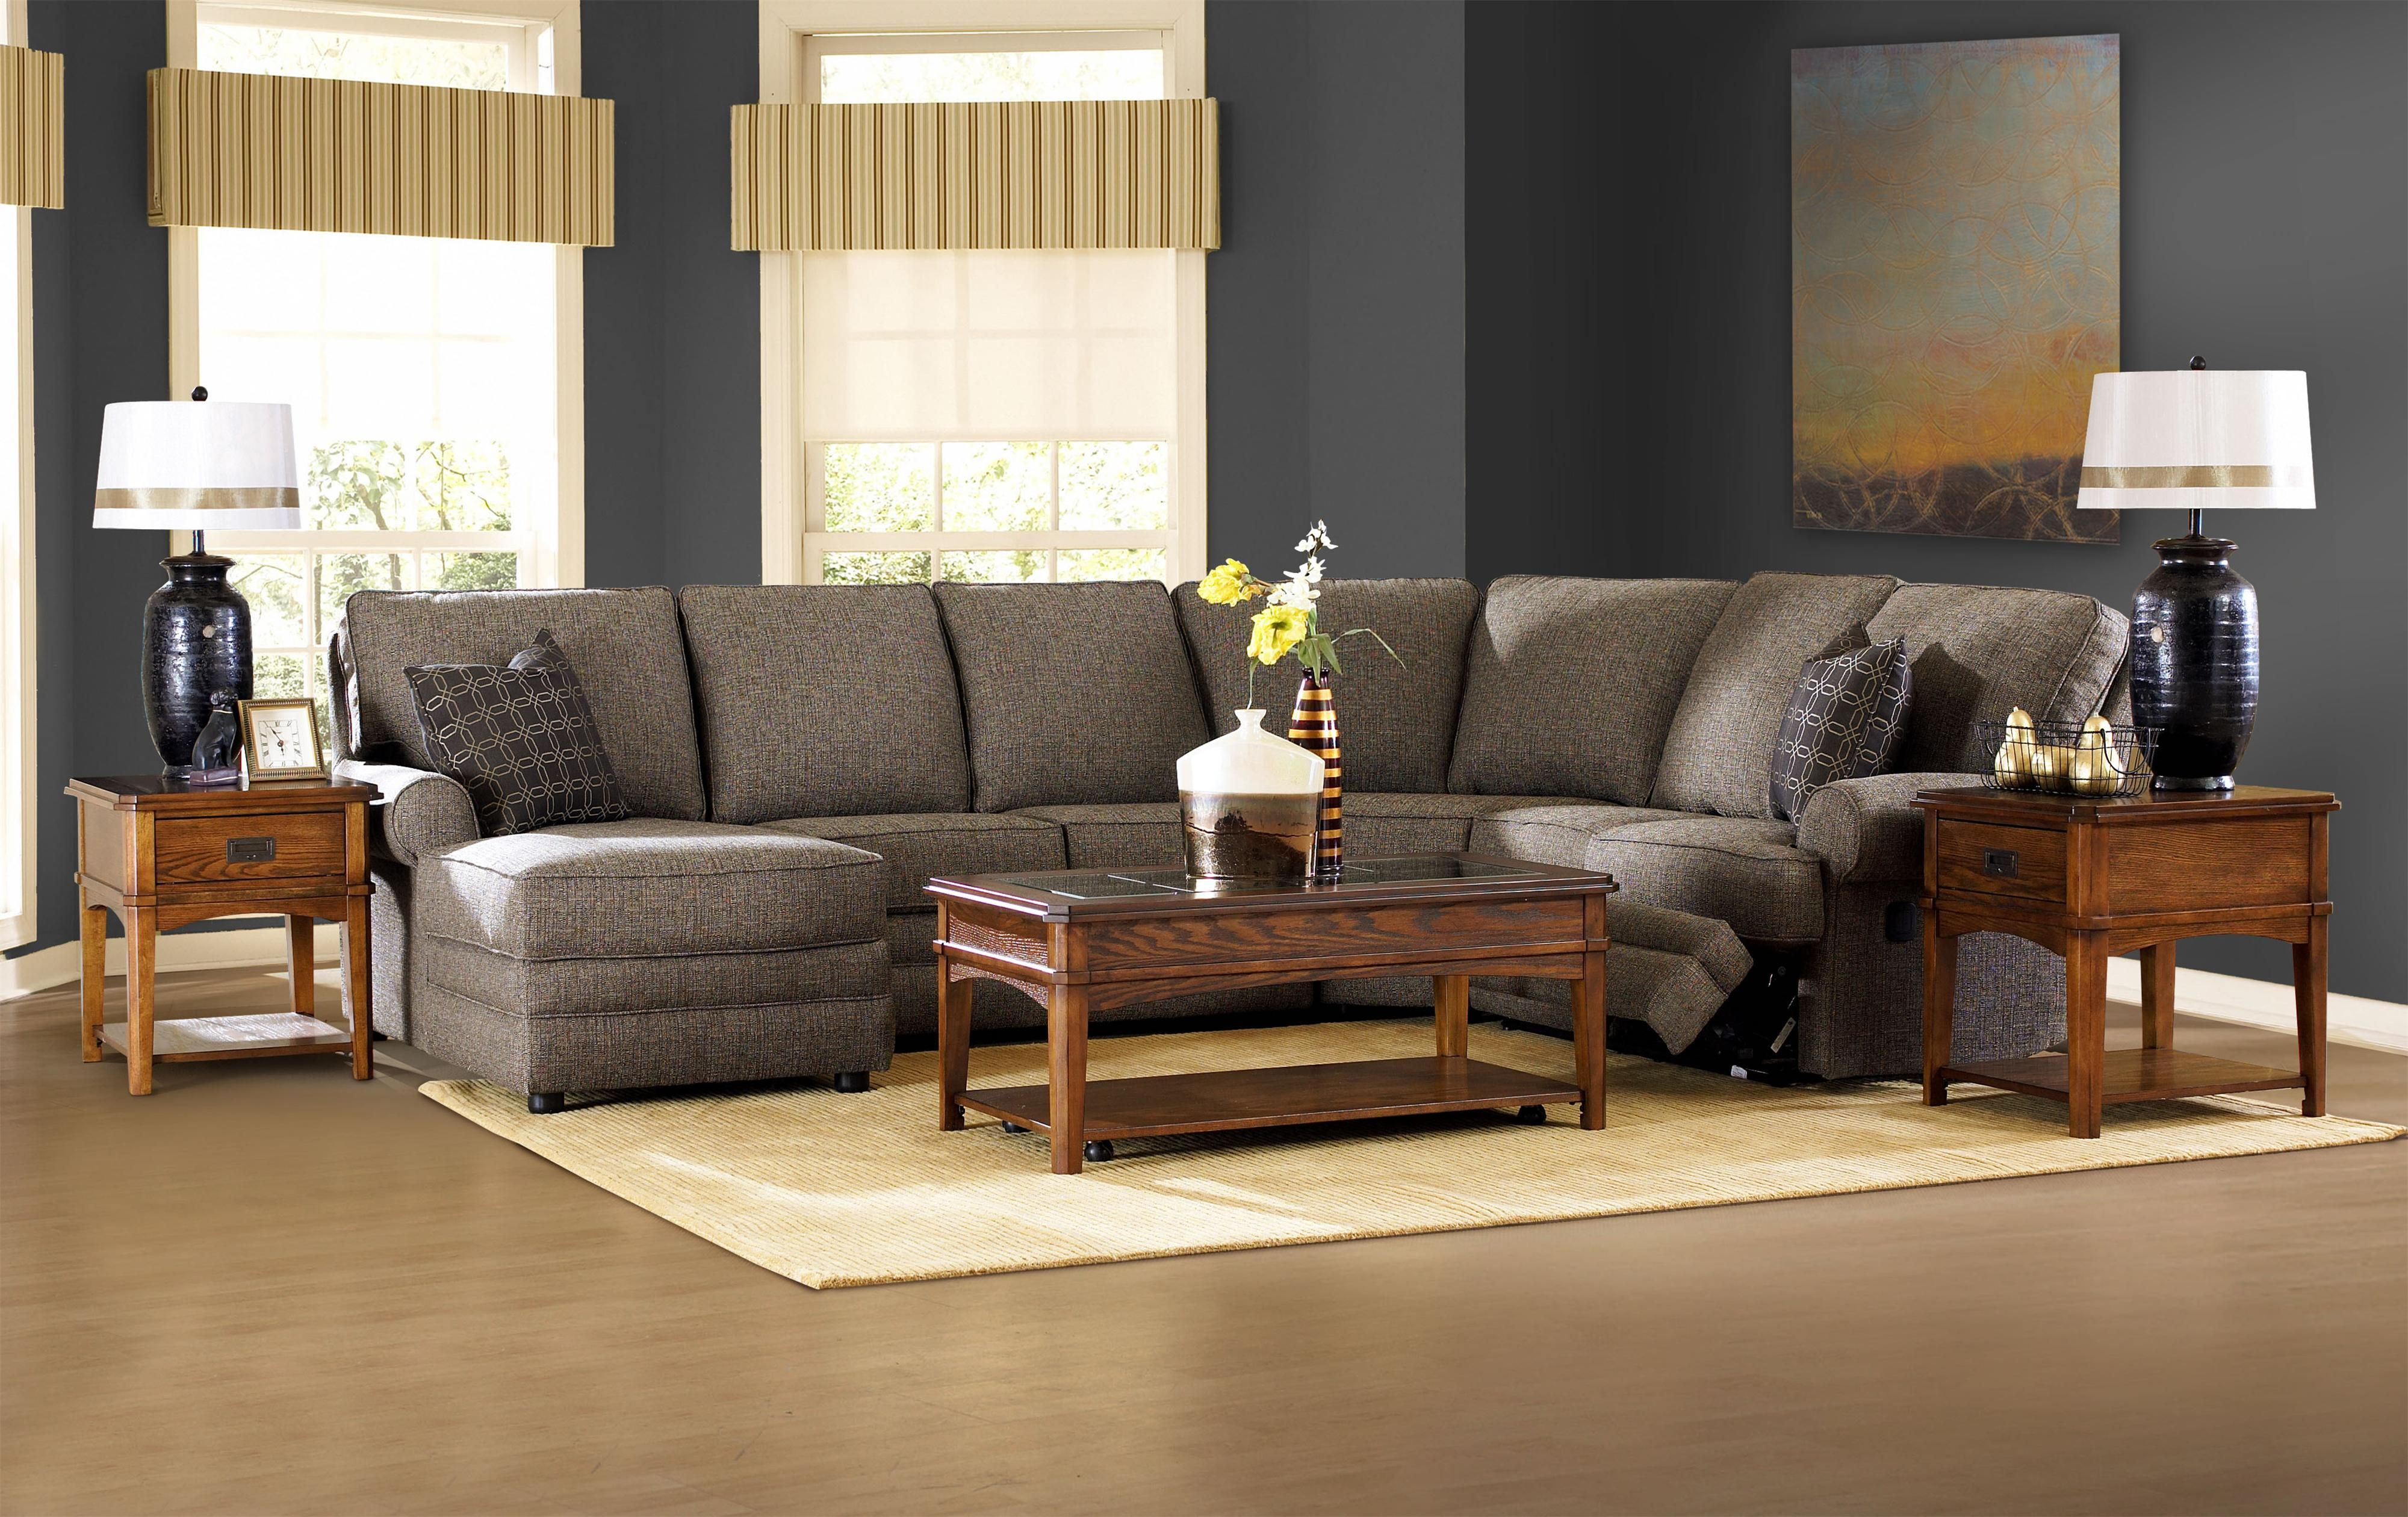 Belleview reclining sectional with leftside chaise by